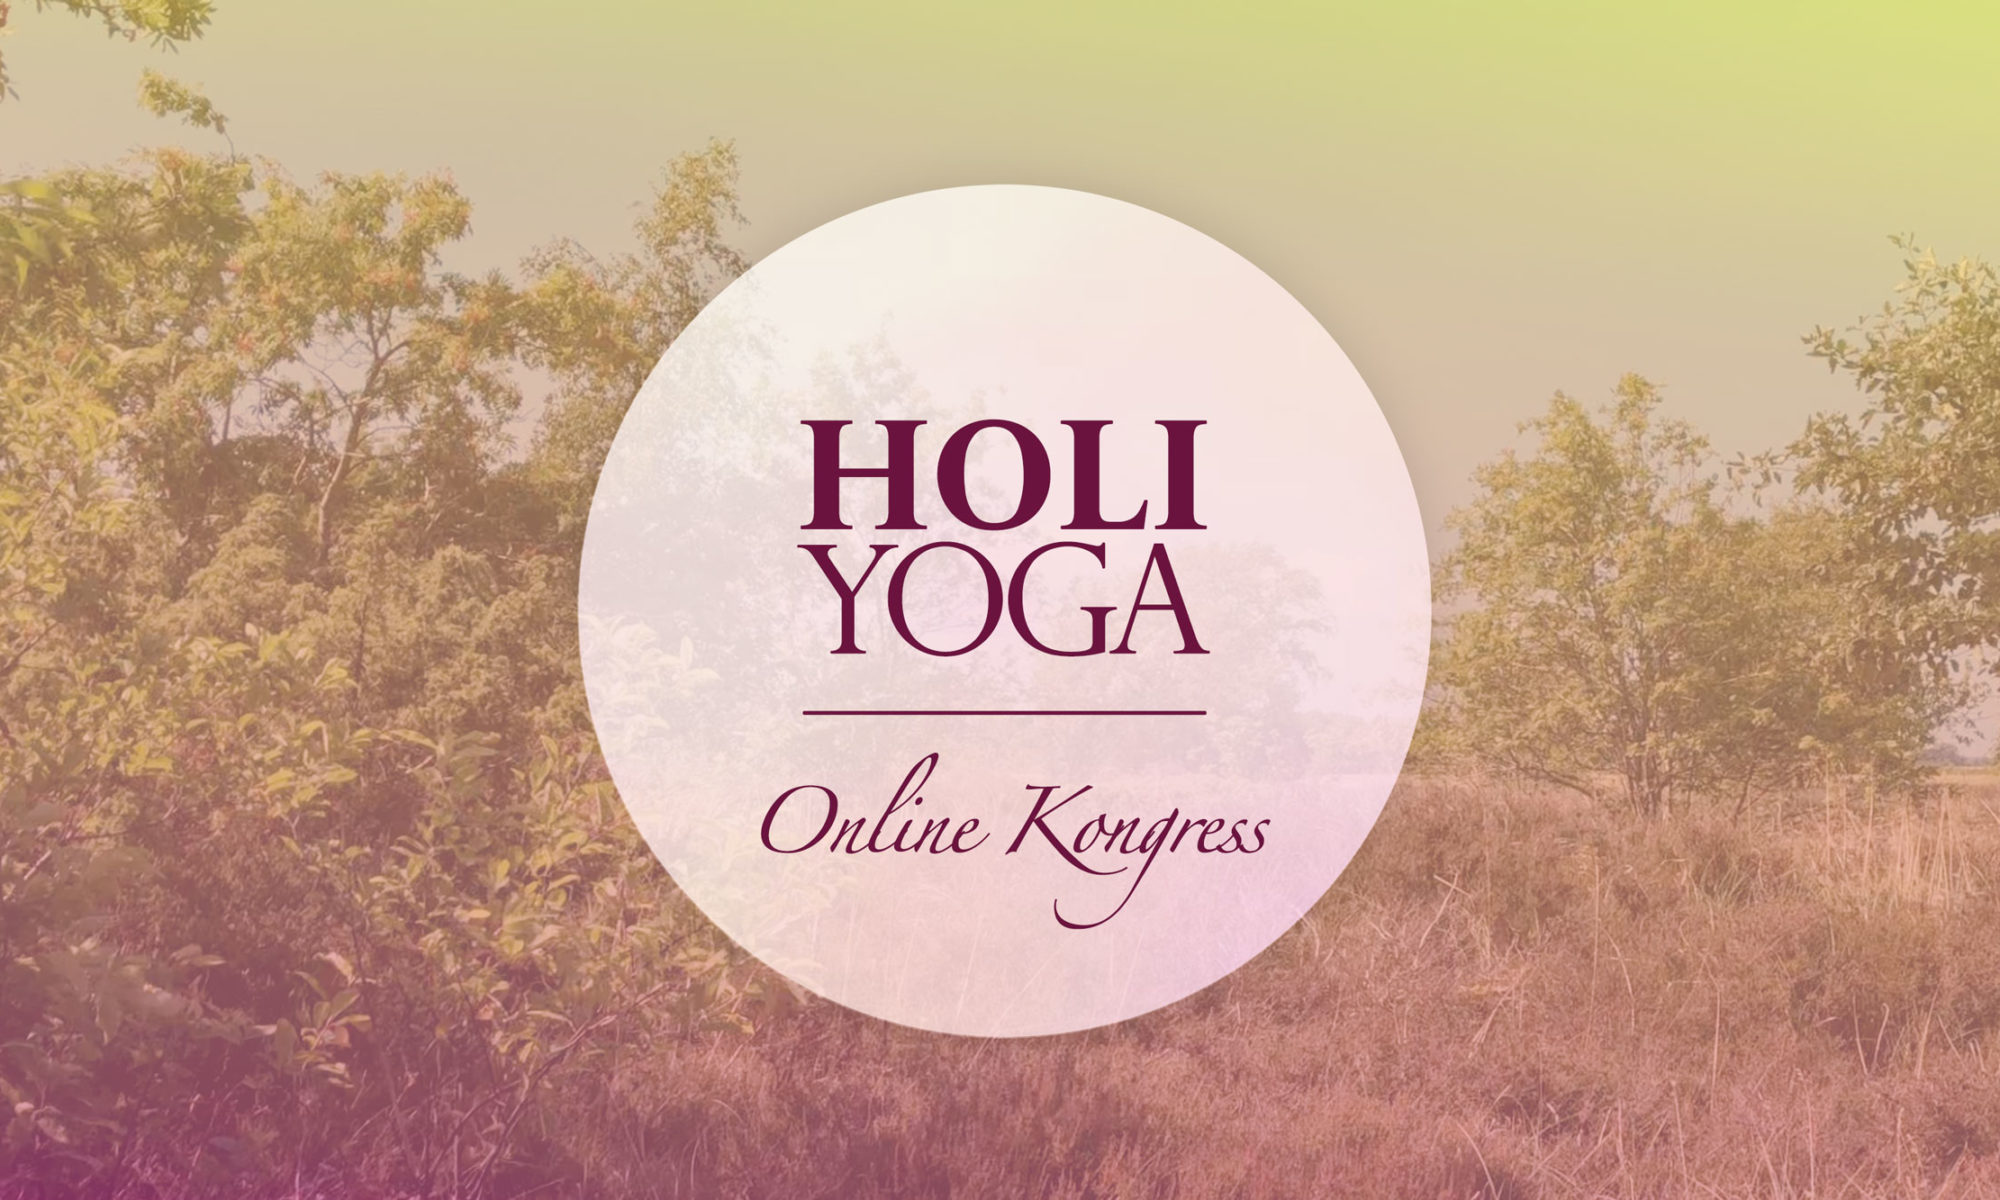 Holi Yoga Online Kongress